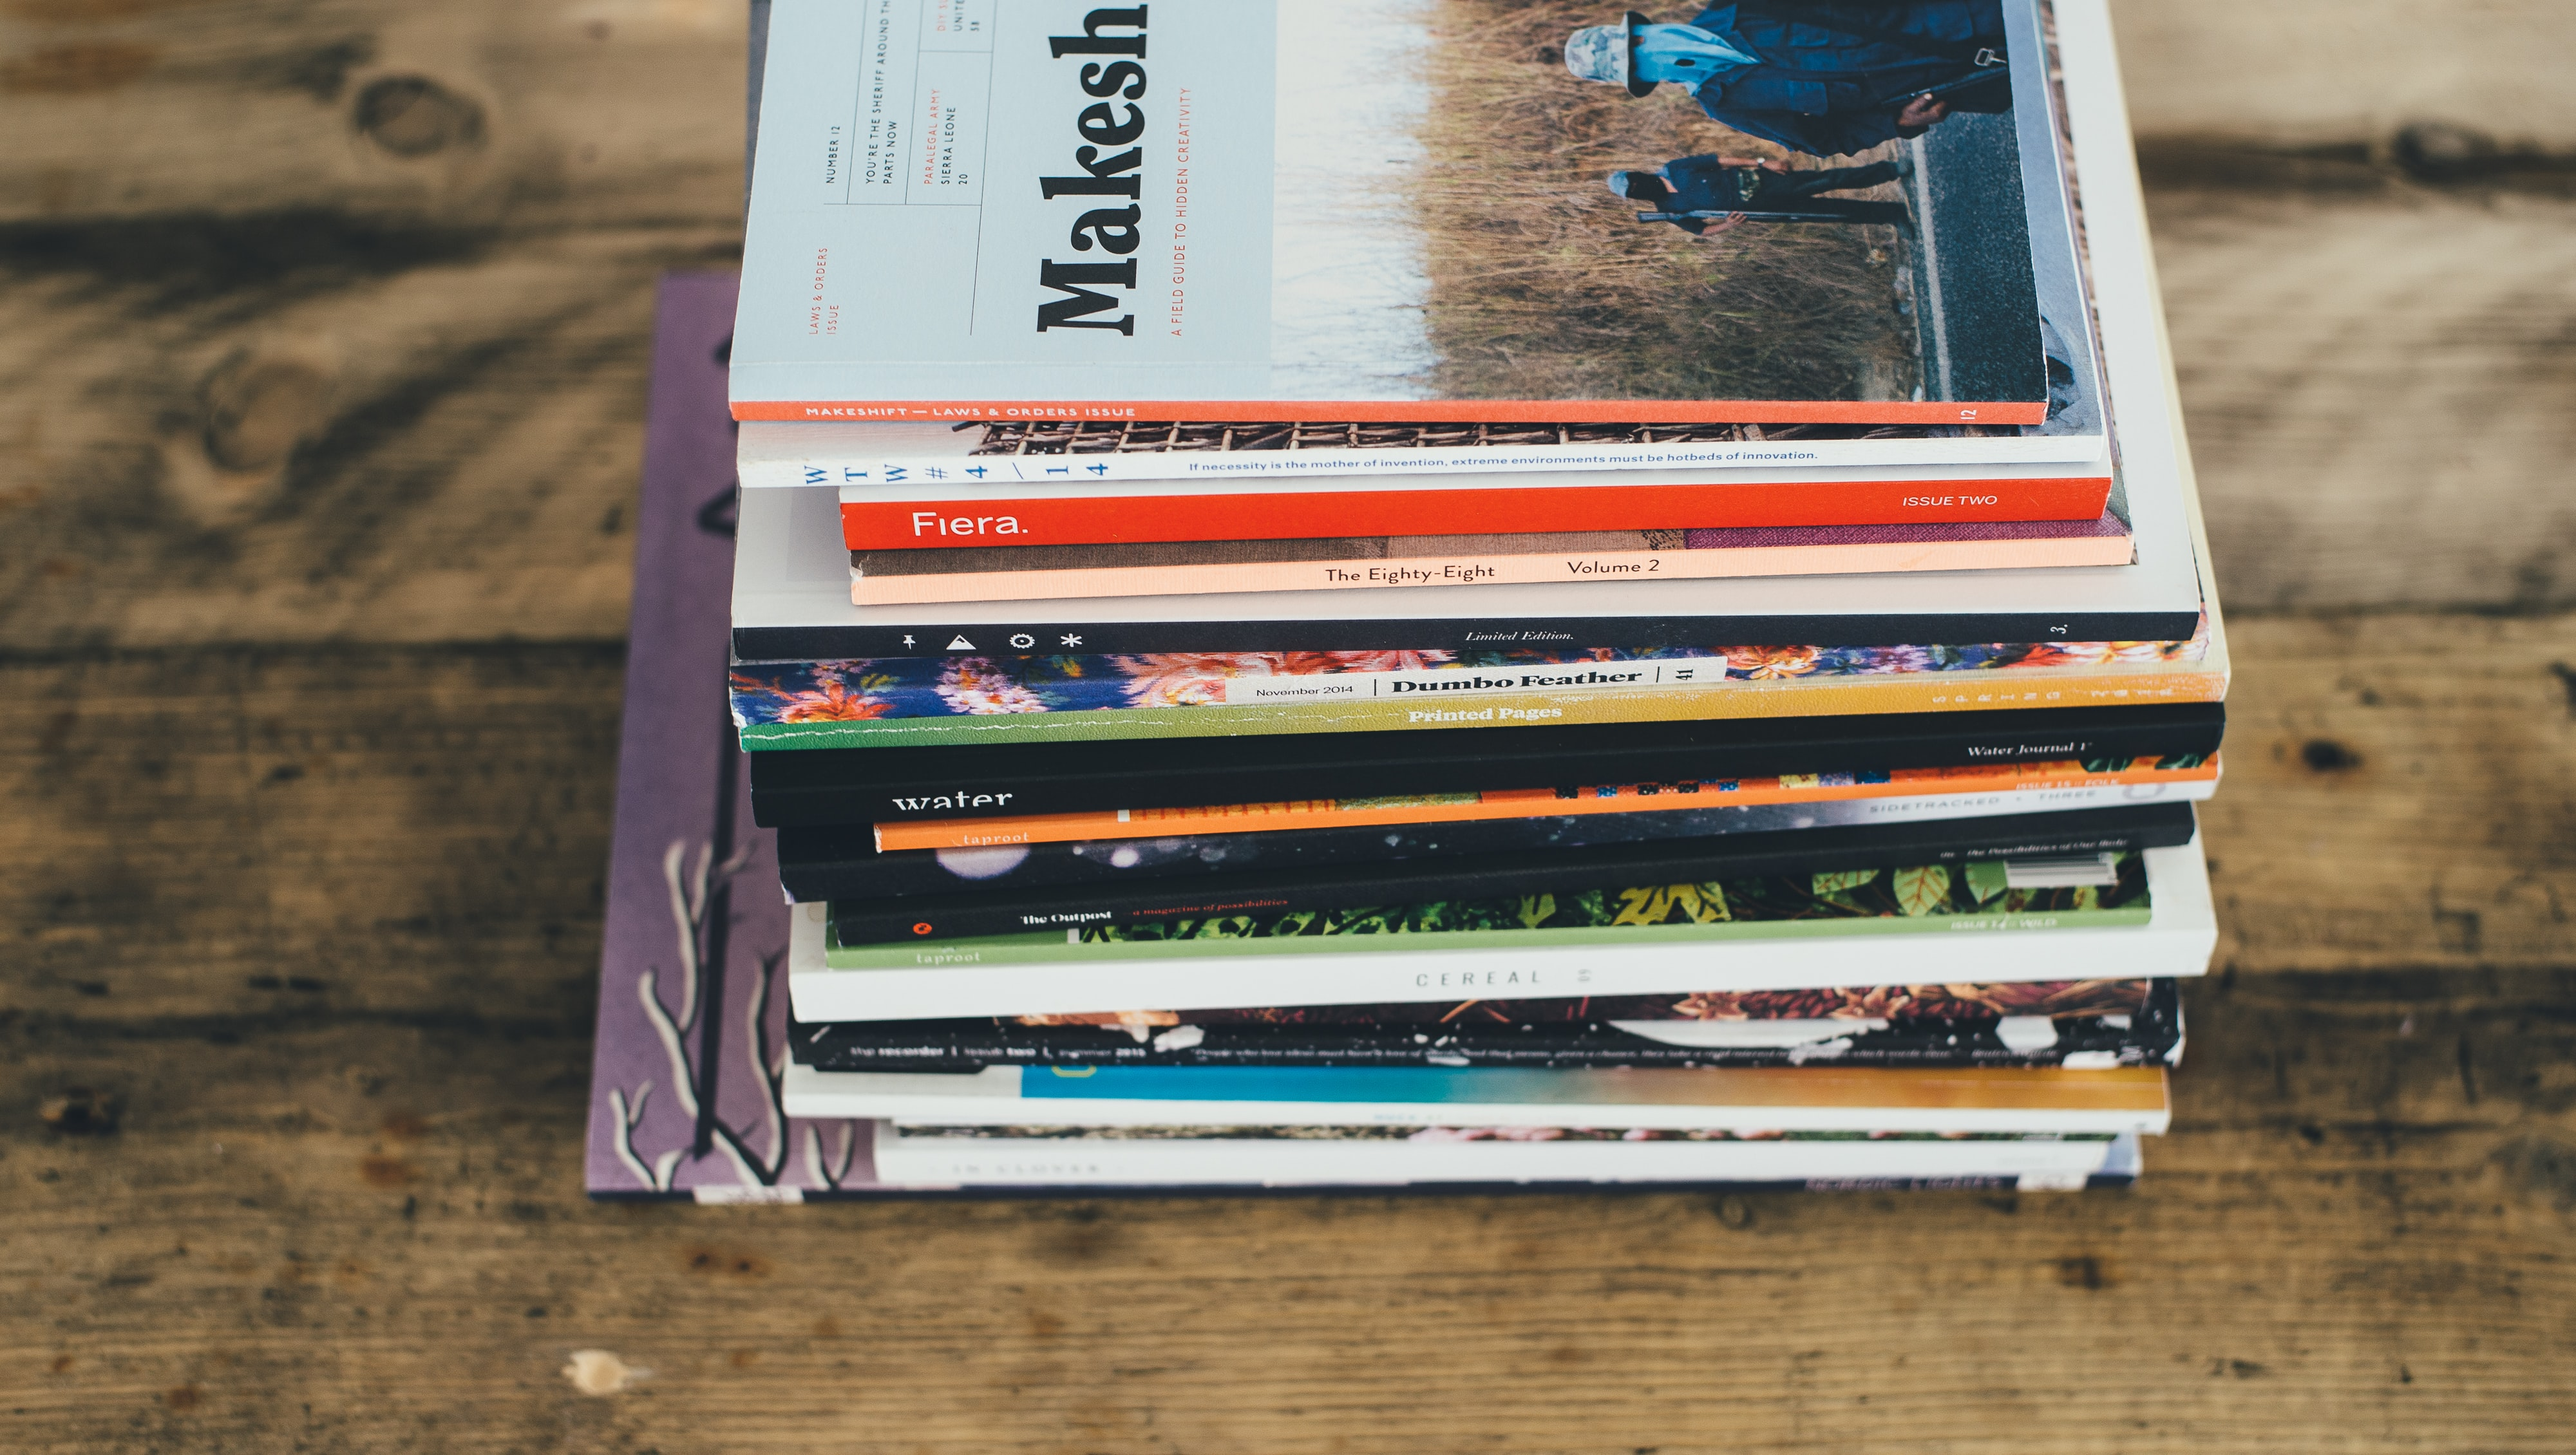 a stack of magazines on a wooden table